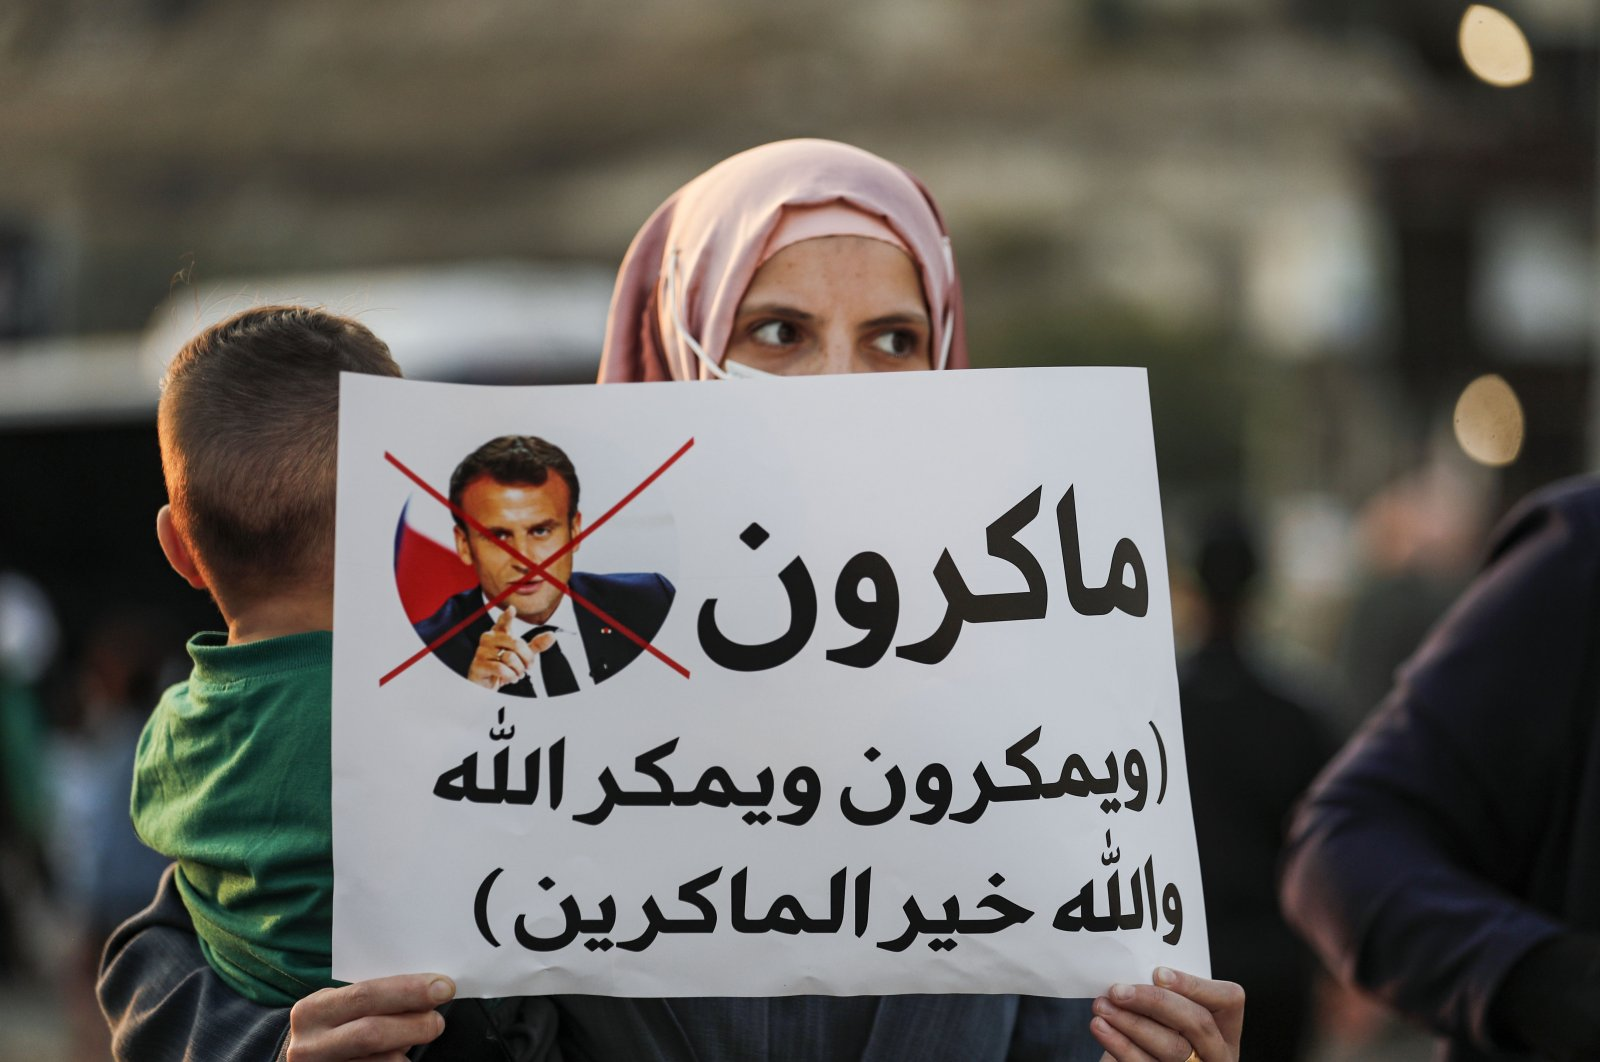 An Arab-Israeli, Muslim demonstrator, holding a child and clad in a mask due to the COVID-19 pandemic, holds up a sign during a rally protesting against French President Emmanuel Macron's anti-Islam remarks, in the Arab town of Umm-Al Fahm, Haifa district, northern Israel, Oct. 25, 2020. (AFP Photo)